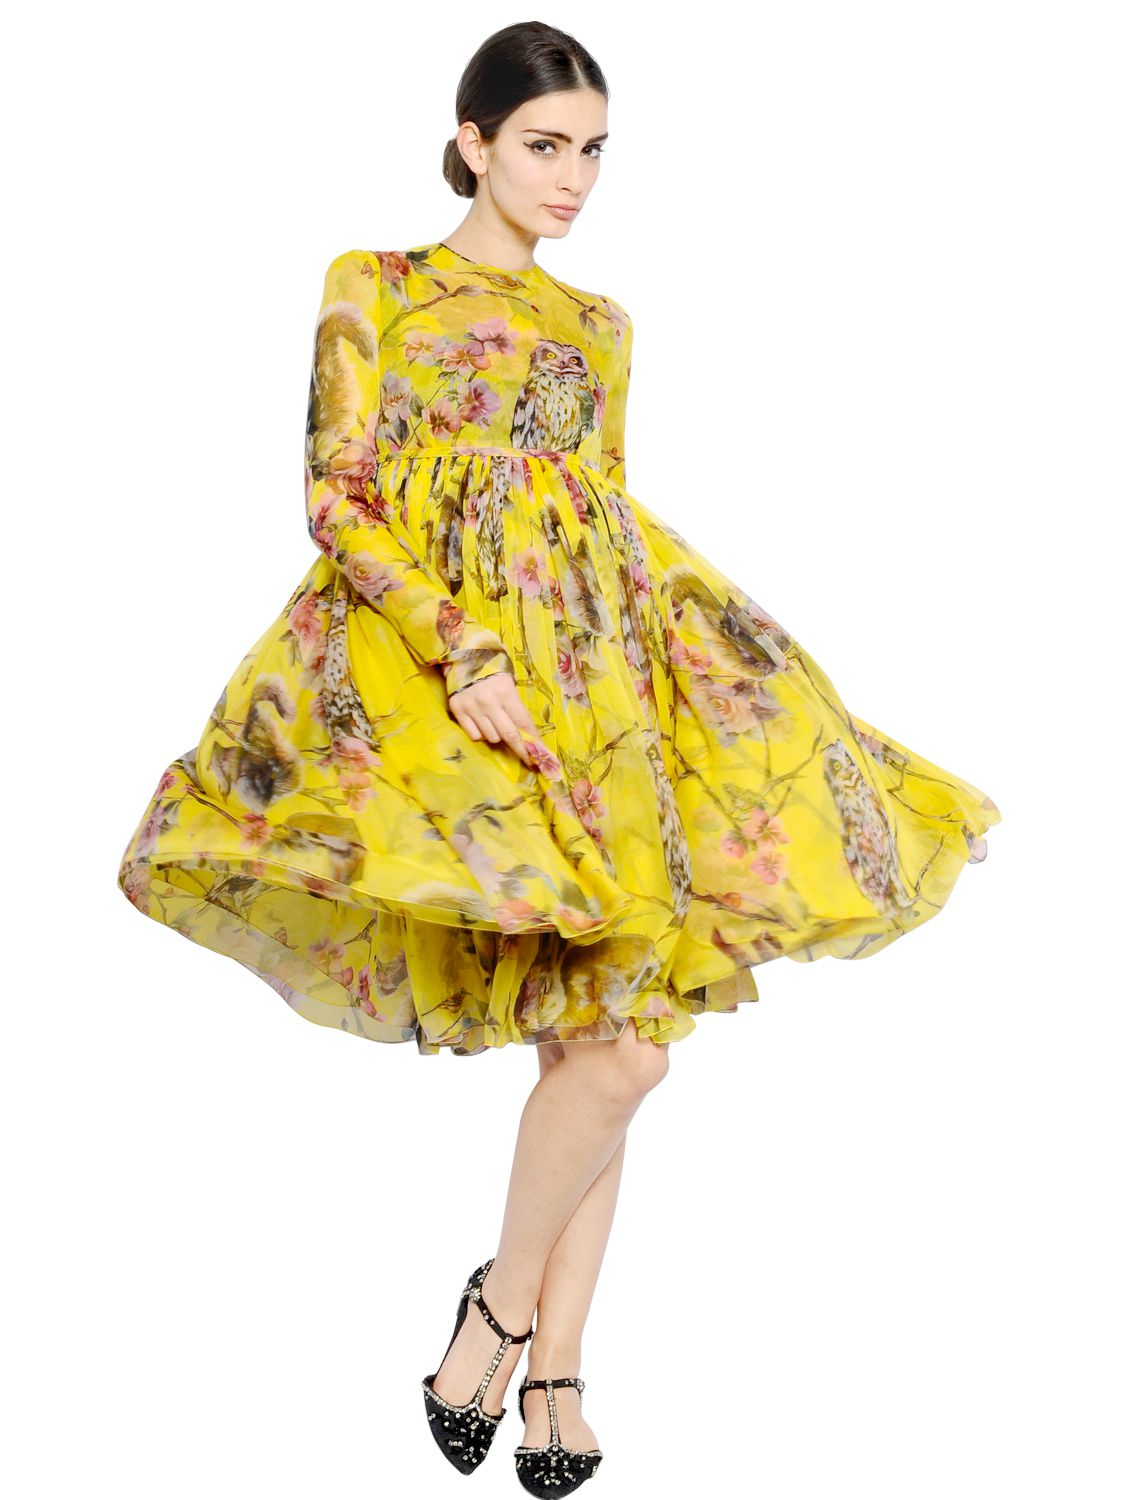 86b83b51ee dolce-gabbana-yellow-floral-printed-silk-chiffon-dress -product-1-20565627-2-516118117-normal.jpeg